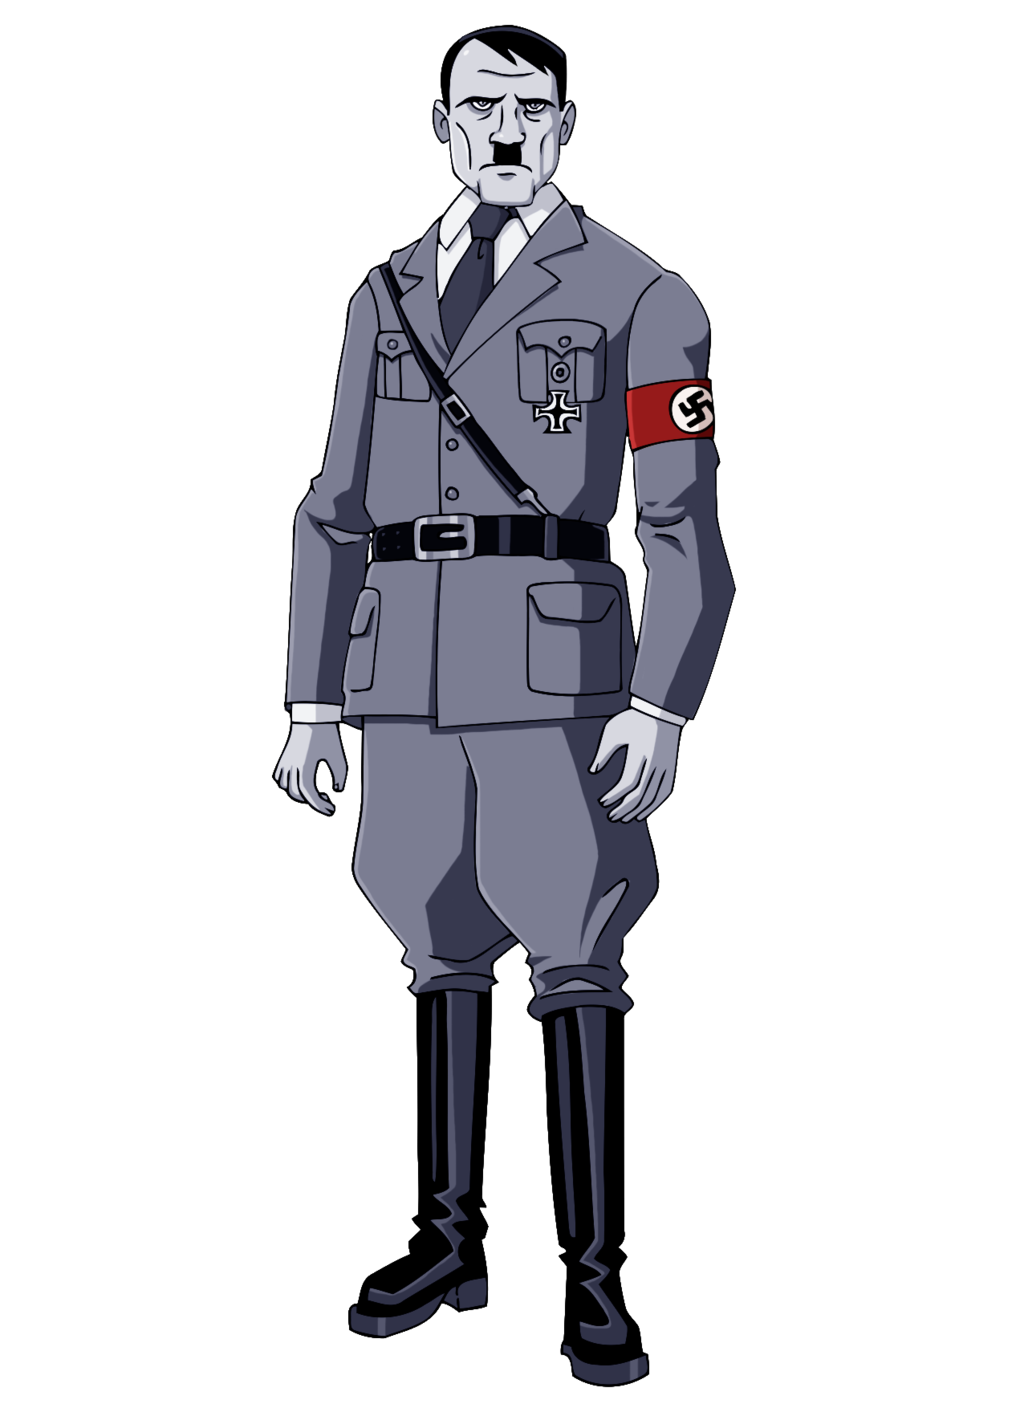 Black nazi soldier png. Adolf hitler images free